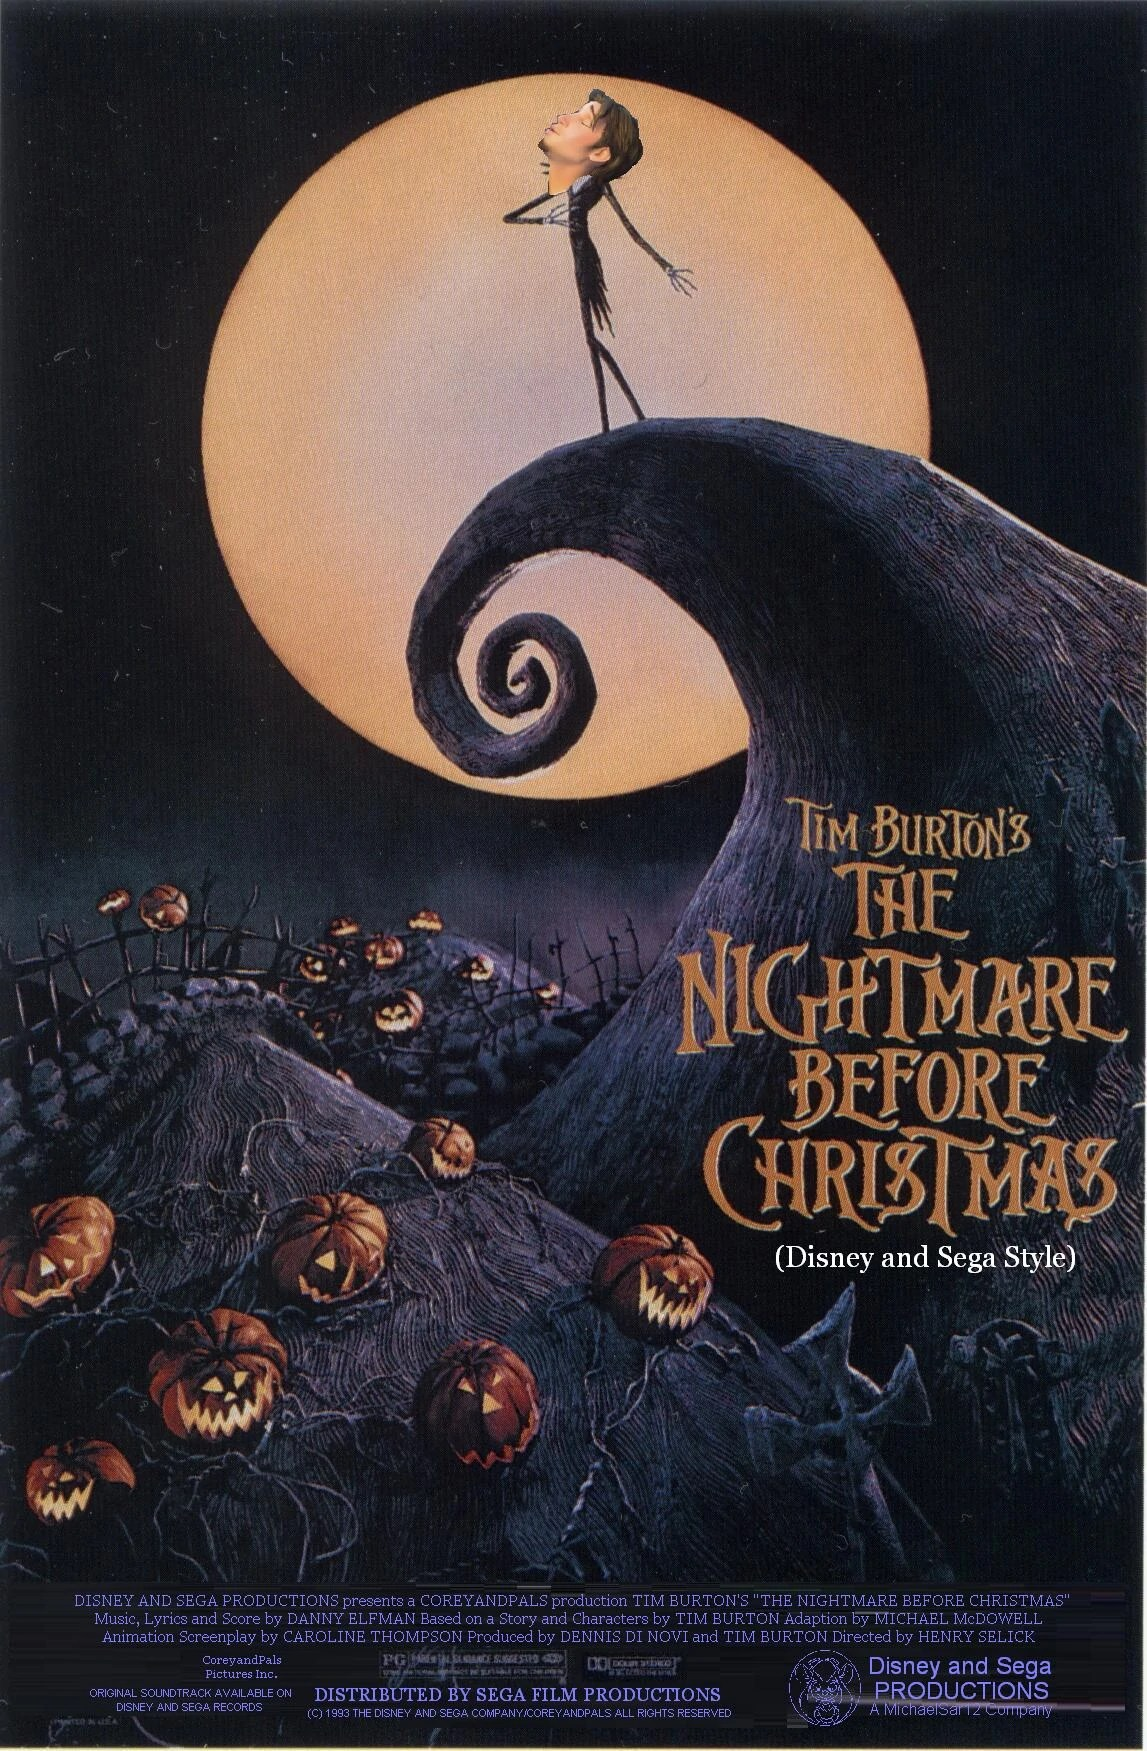 The Nightmare Before Christmas Disney and Sega Style